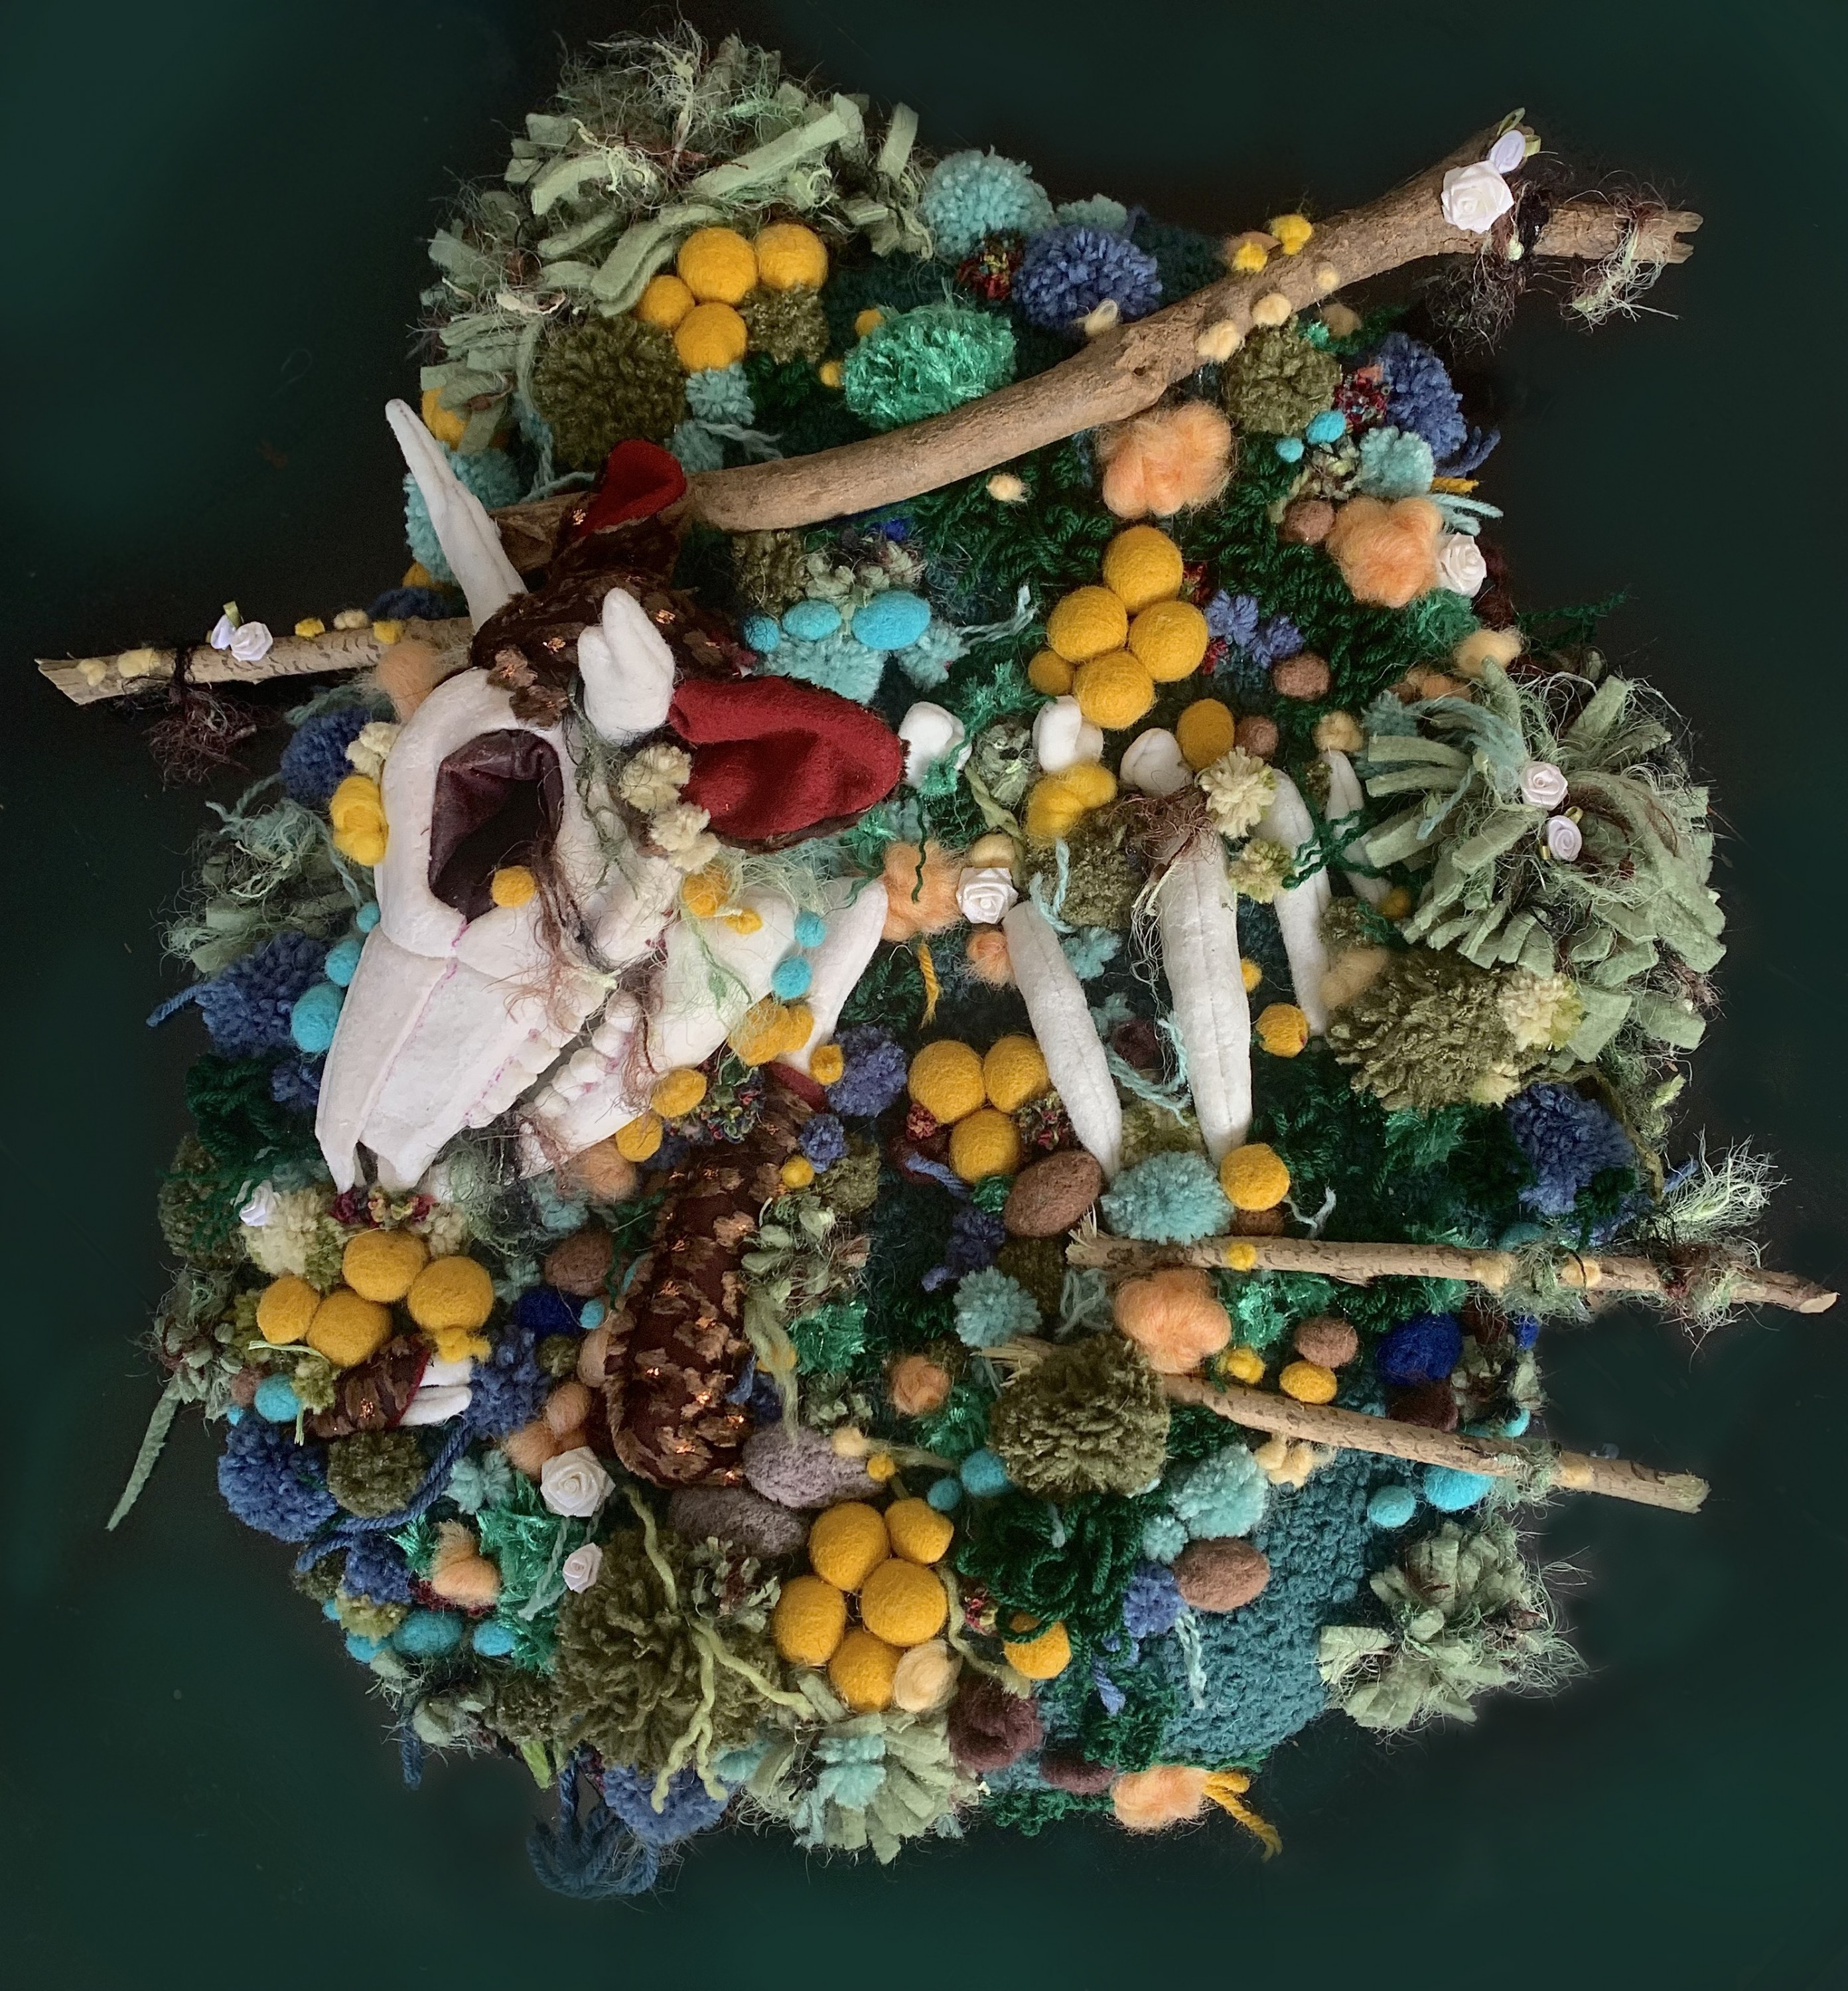 A fabric skull with horns and ears is resting in a bed of pompoms. The pompoms are various colors of blue, green, brown, and yellow to resemble fungi. There are several sticks poking out from the pompoms, and the sticks have small white flowers and yarn t